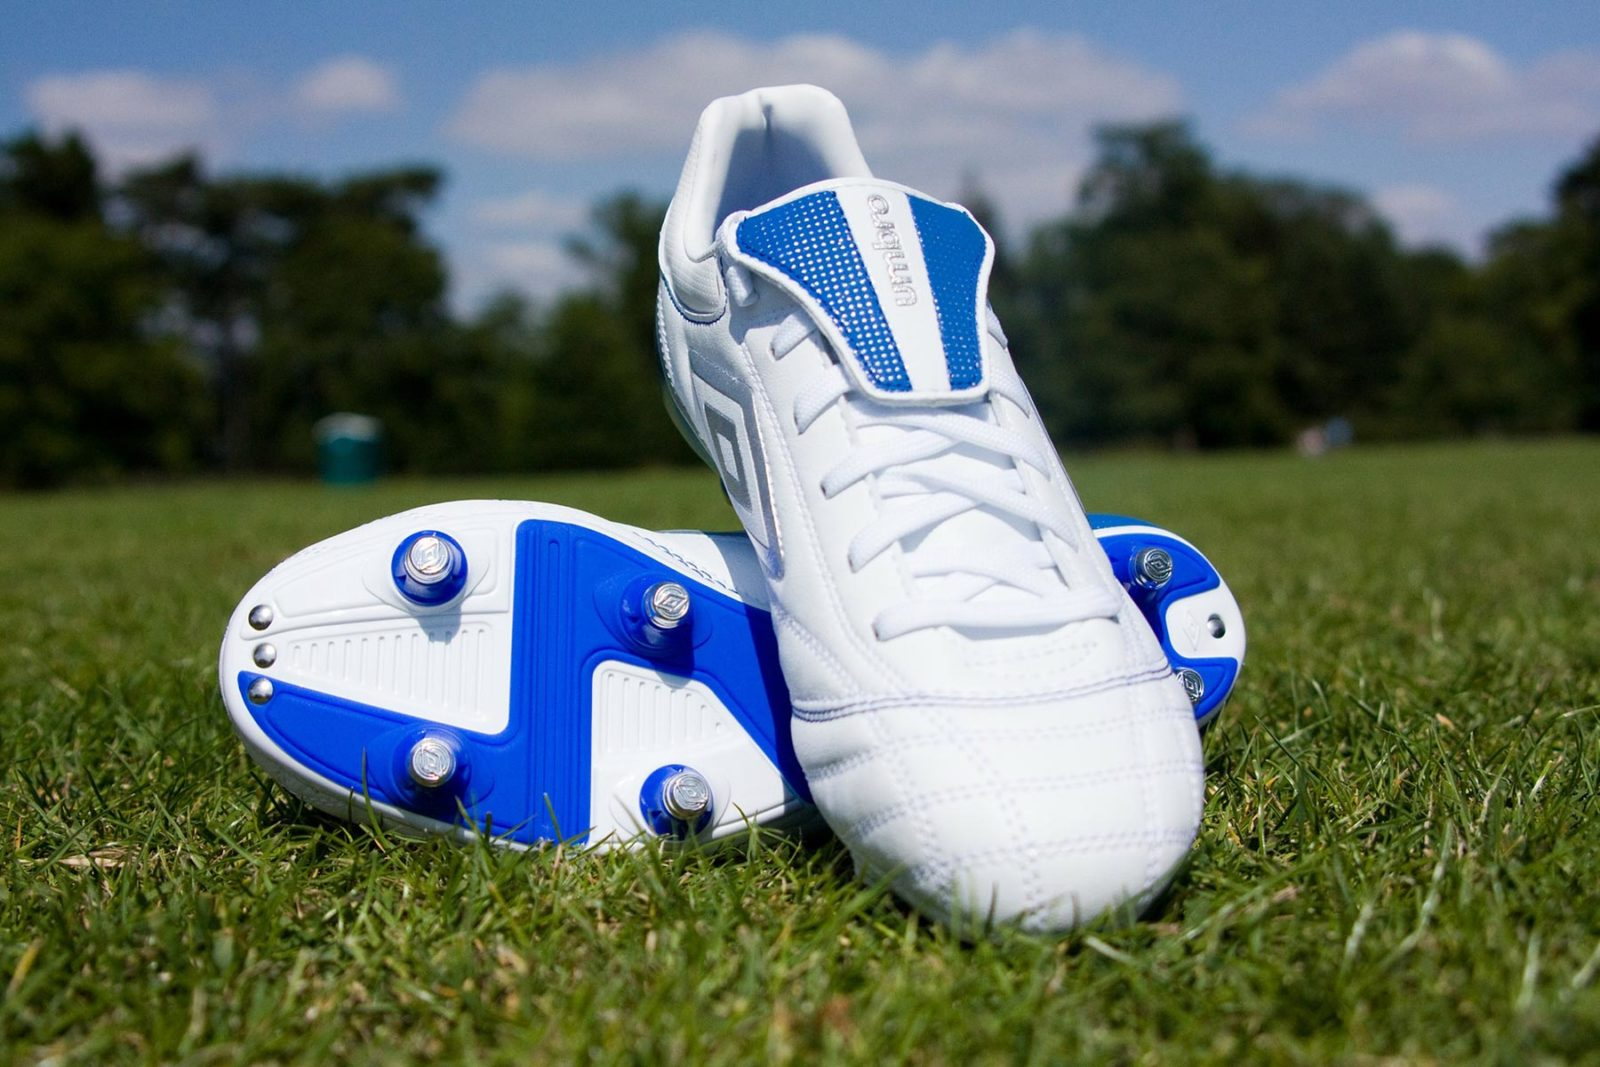 Pair of footy boots on a grass field